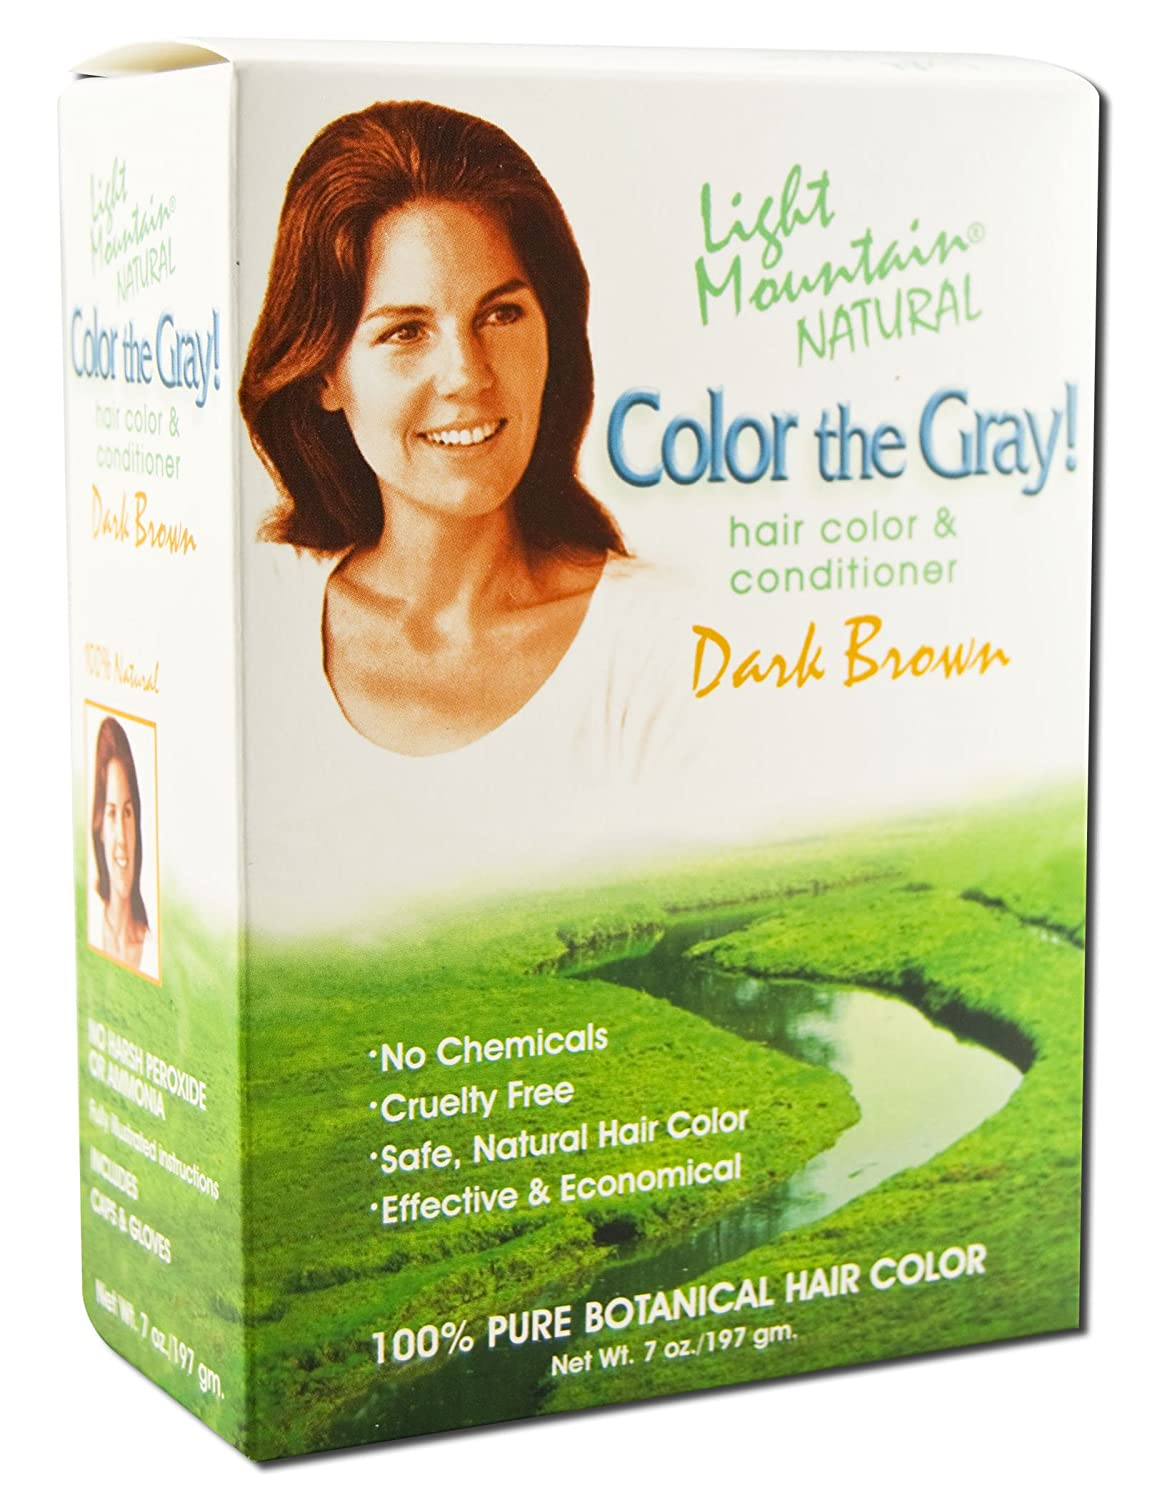 Amazon.com : Light Mountain Natural Color The Gray! Hair Color & Conditioner, Dark Brown, 7 oz, (Pack of 2) : Hair Hennas : Beauty